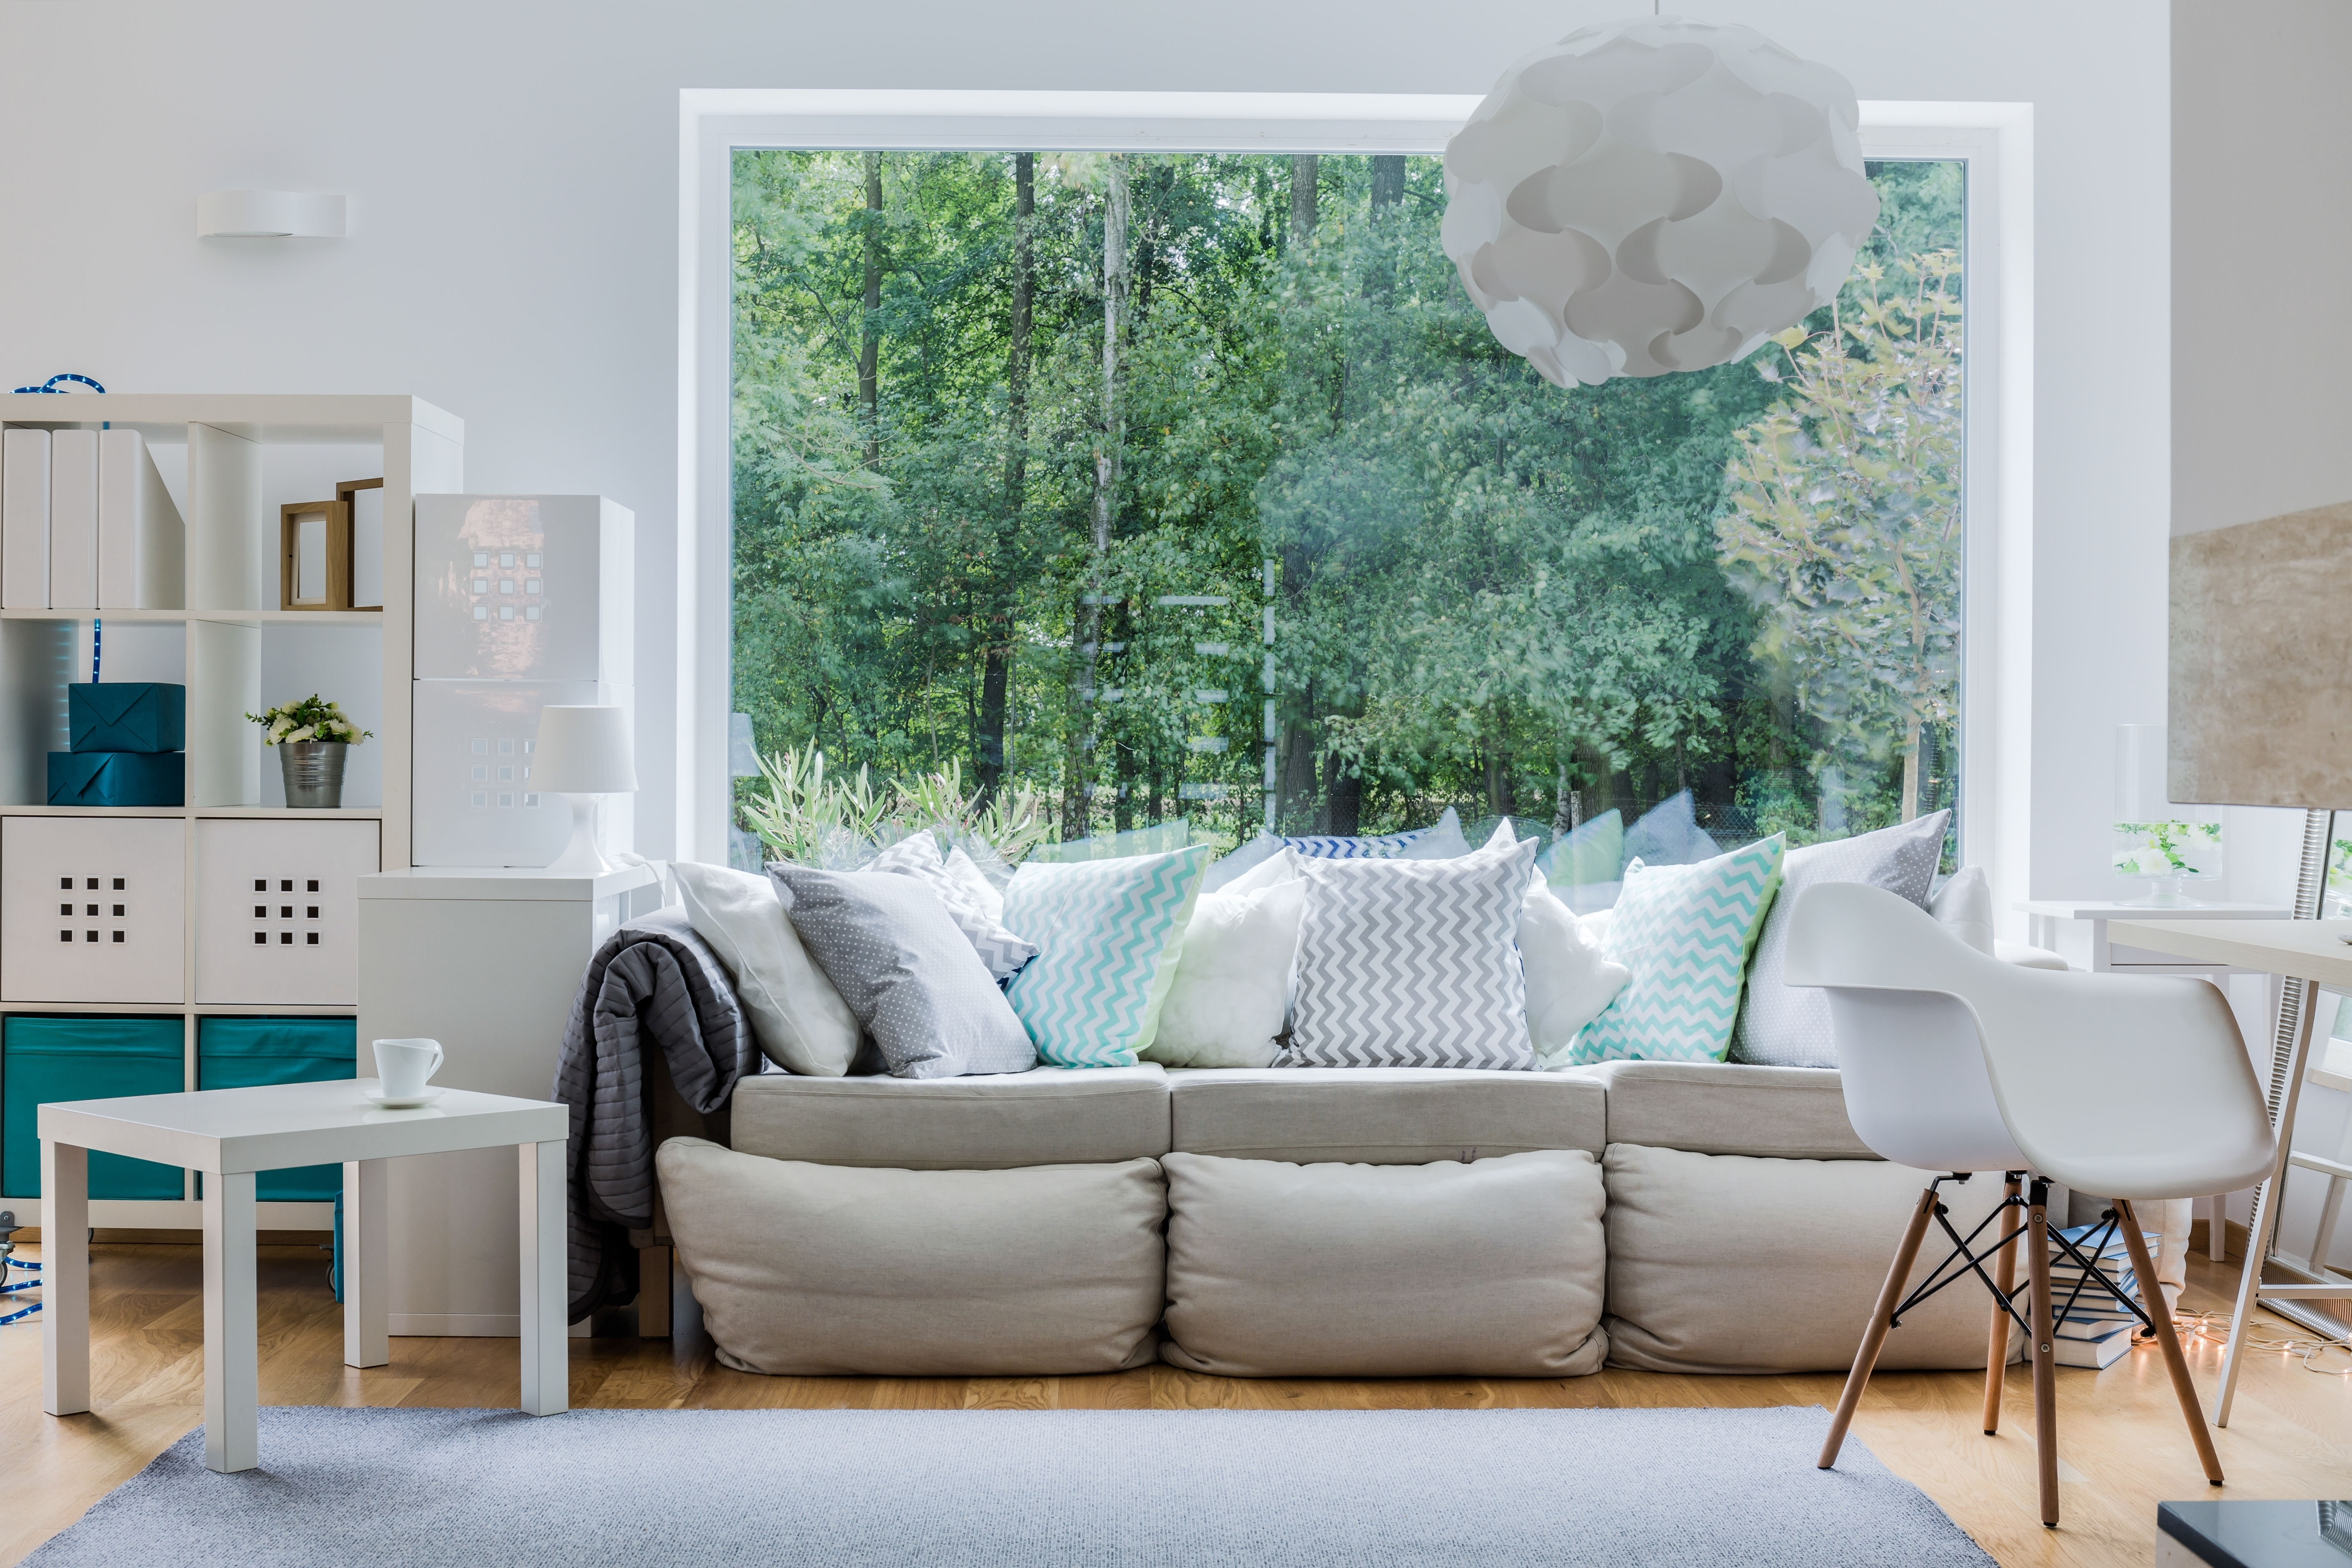 How to make small spaces look bigger